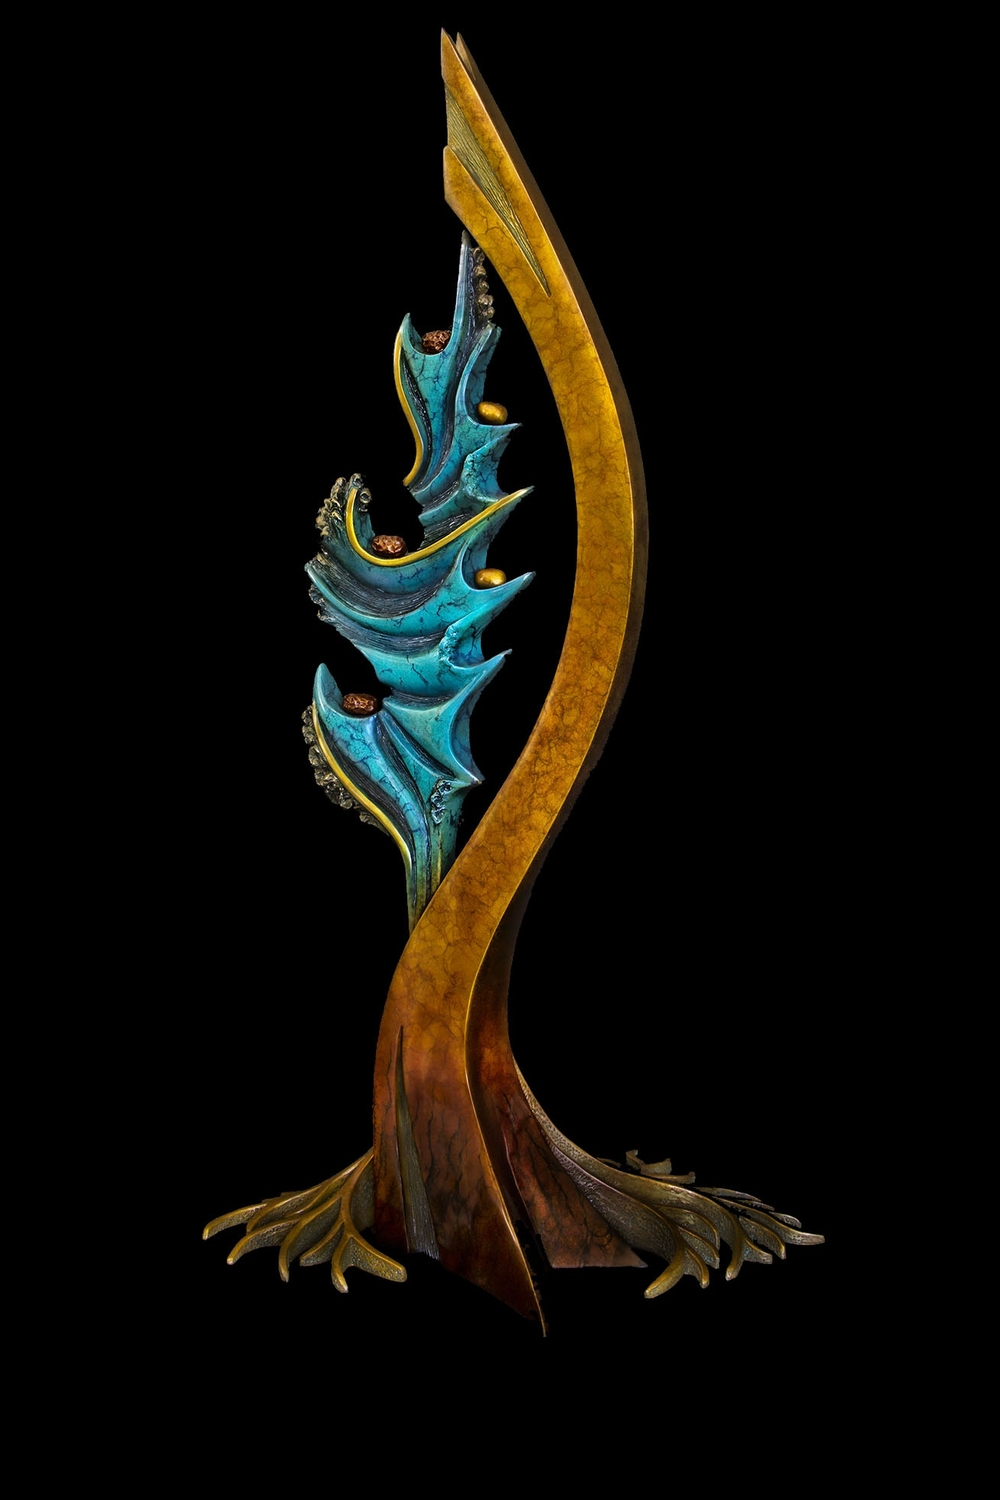 "Roots of Inspiration  , Bronze, 37"" H x 19"" W x 15.25"" D, Edition of 35:  In order to thrive in this world and/or allow the creative process to blossom forth in all its glory, a stable, grounded, yet flexible element in our lives needs to take root. From these grounded roots, newness, joy, creativity, daring, and eventually the seeds of further growth and exploration spring forth like an arrow from a bow.  The Tree of Life here also serves as a symbol for the earth with the ever-changing, ever-creating ocean feeding off of it."